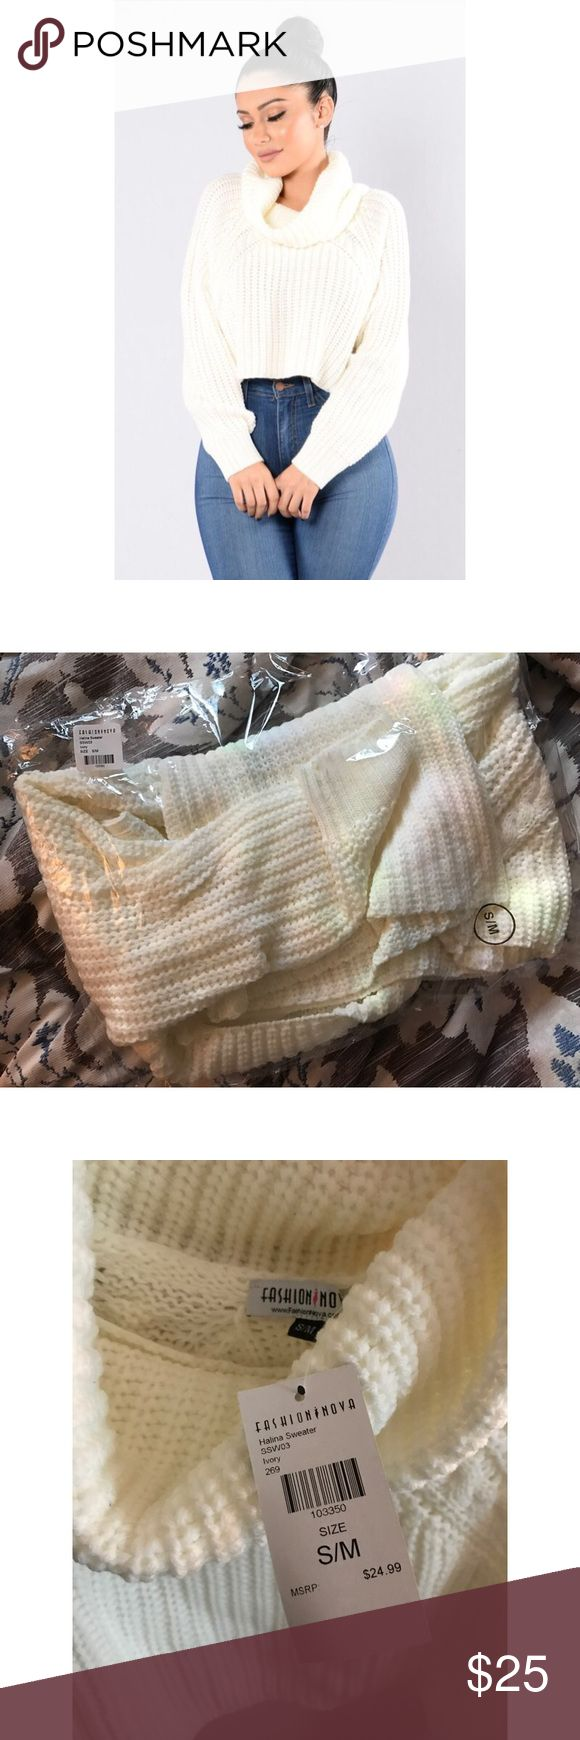 NWT Halina Sweater As seen on Cardi B's IG  NWT cropped turtle neck sweater. Brand new, unused and ships in original packaging. Price firm Fashion Nova Sweaters Cowl & Turtlenecks